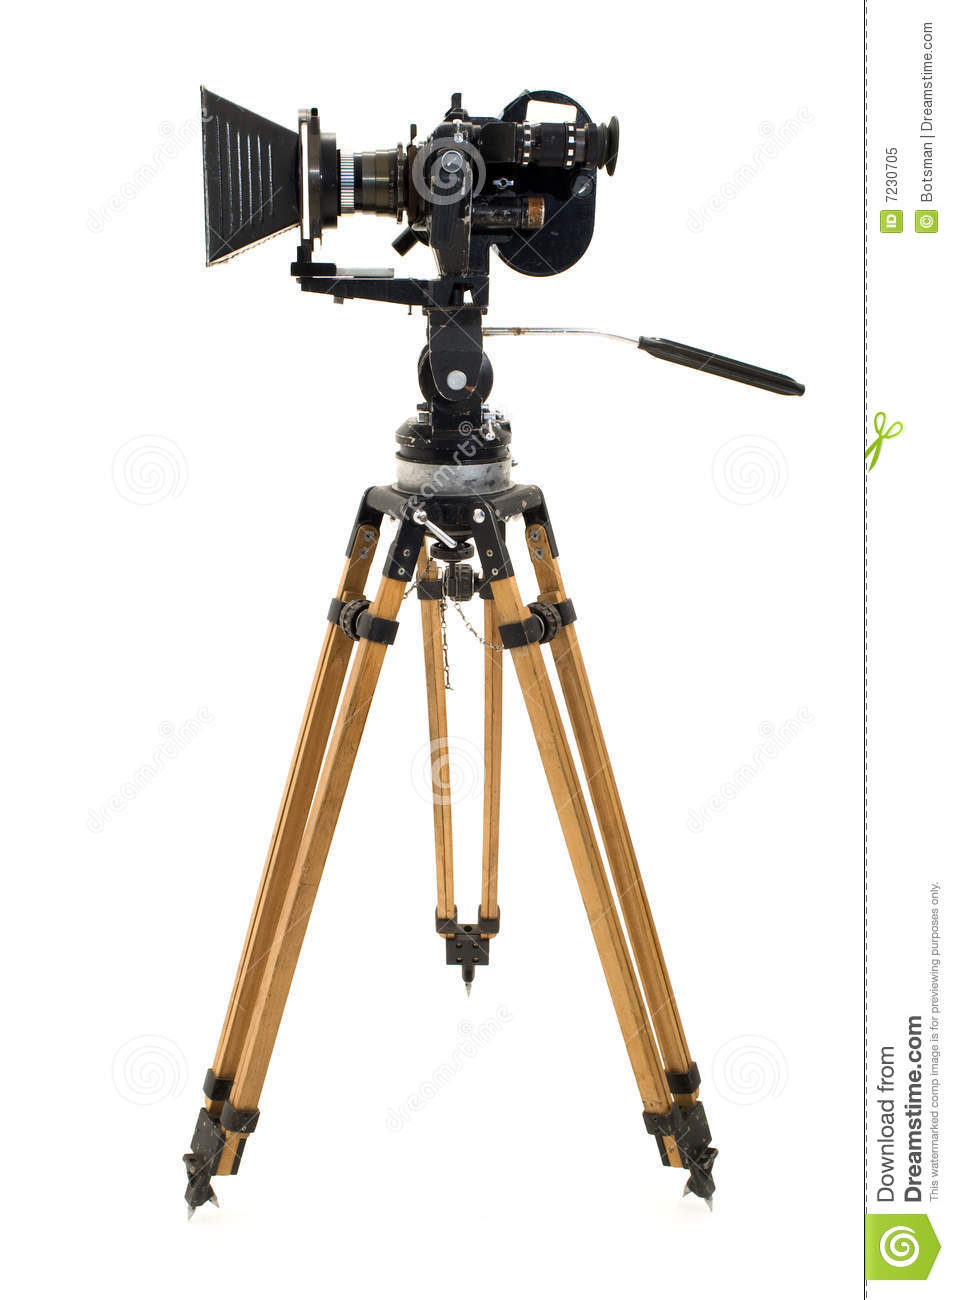 The Movie Camera And Tripod. Royalty Free Stock Photo - Image: 7230705